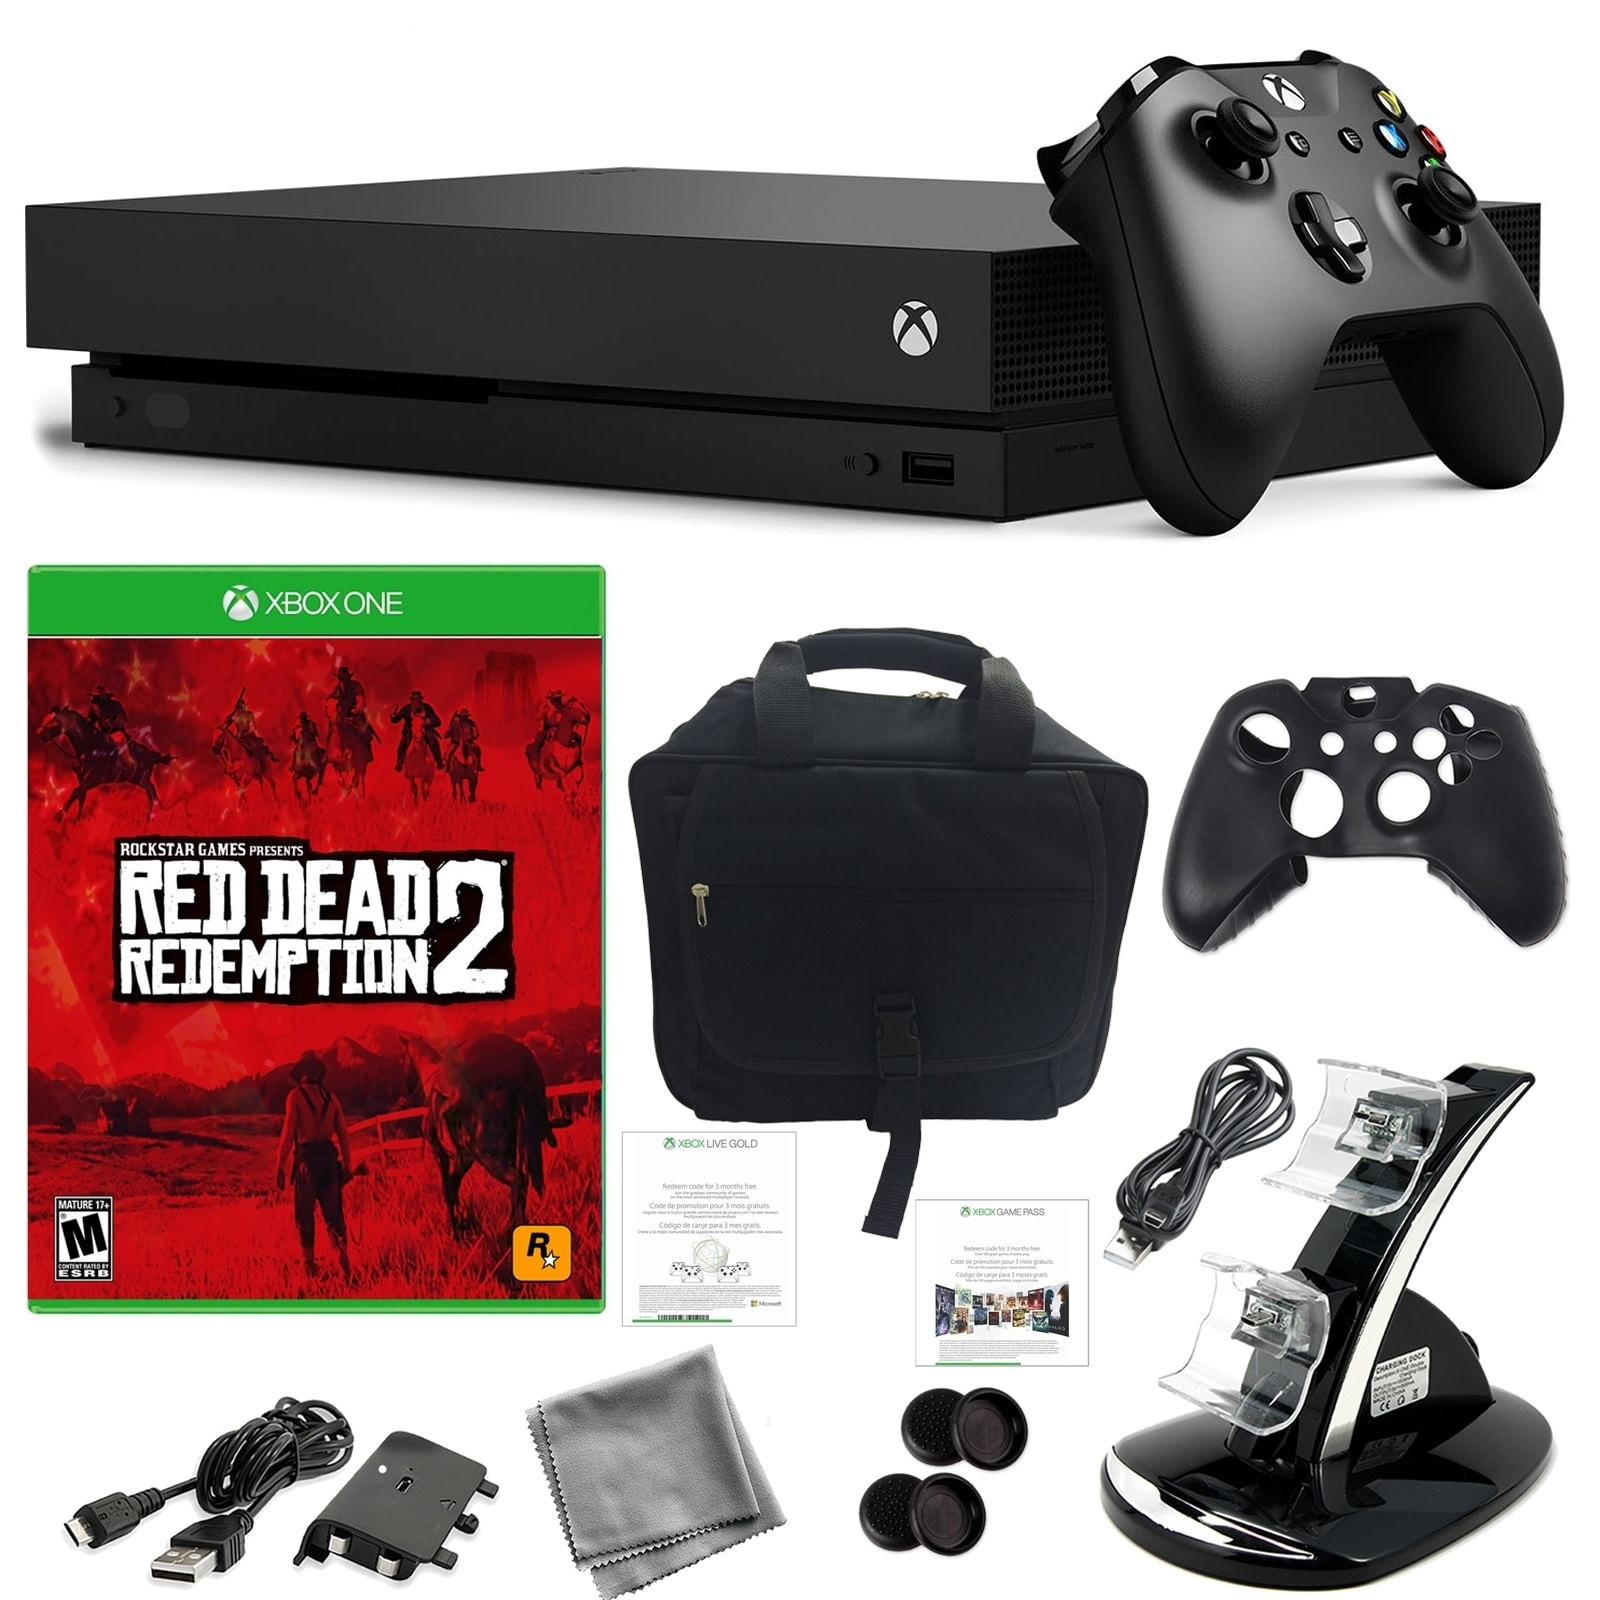 Xbox One X 1TB Console with Red Dead Redemption 2, Console Bag and Kit